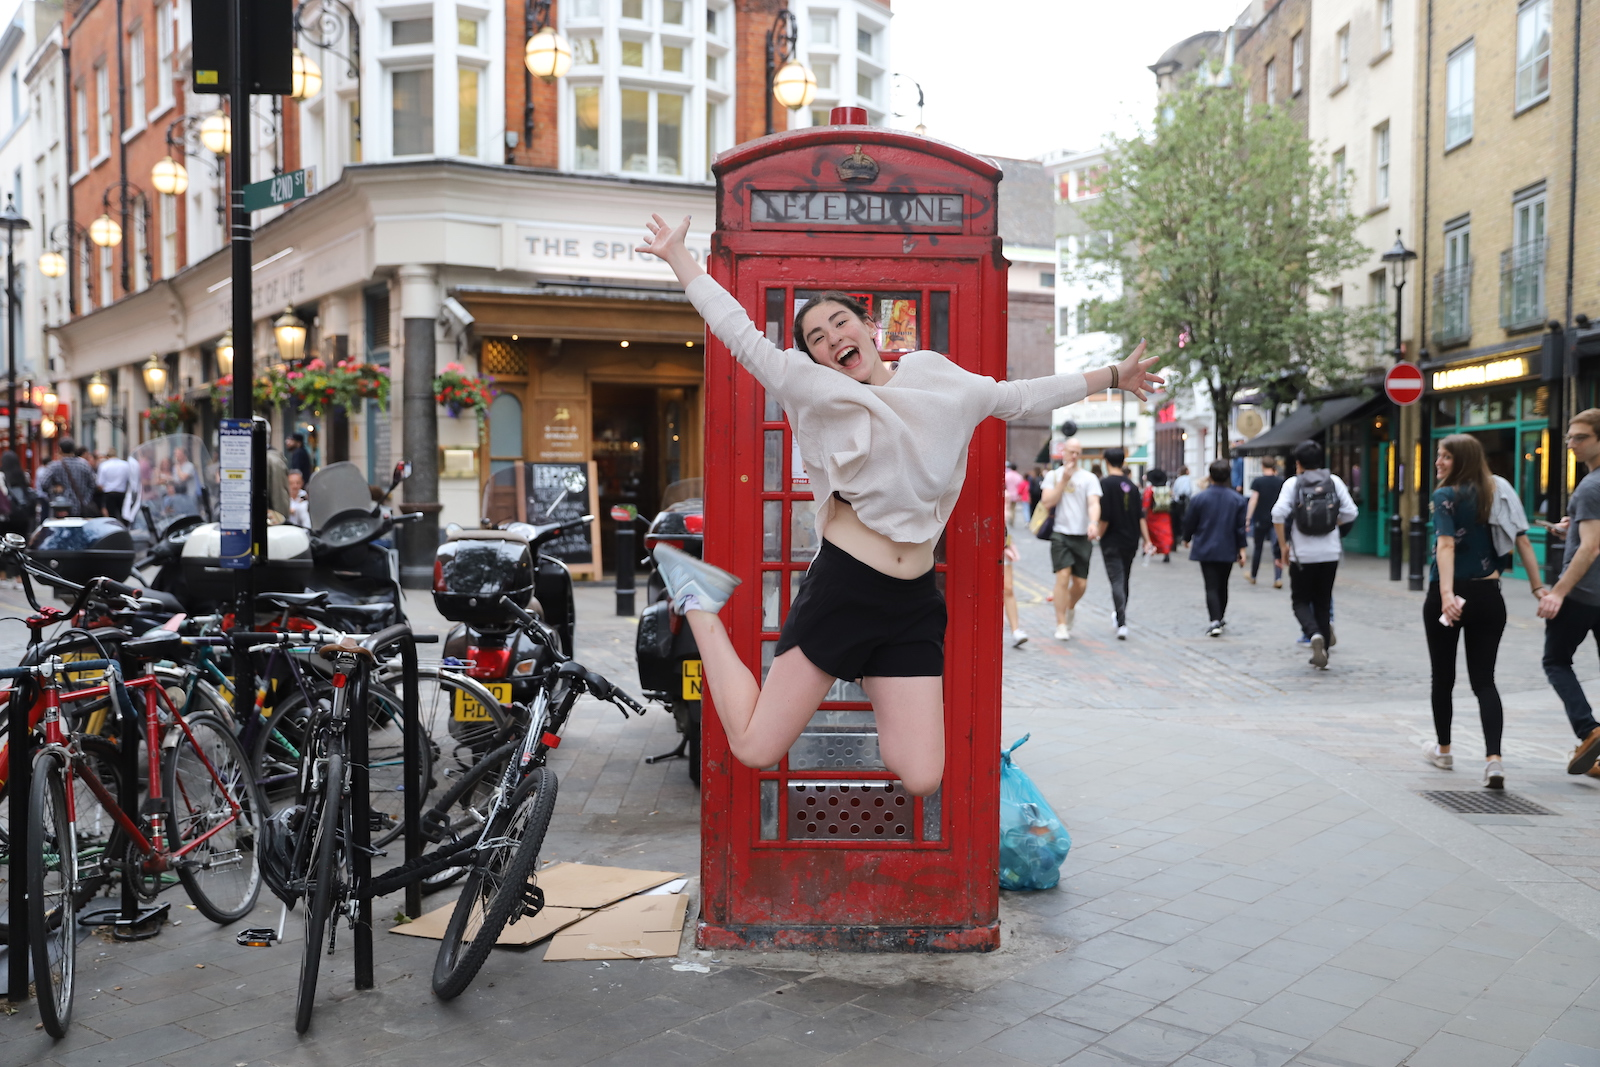 Teen jumping in front of a London phone booth